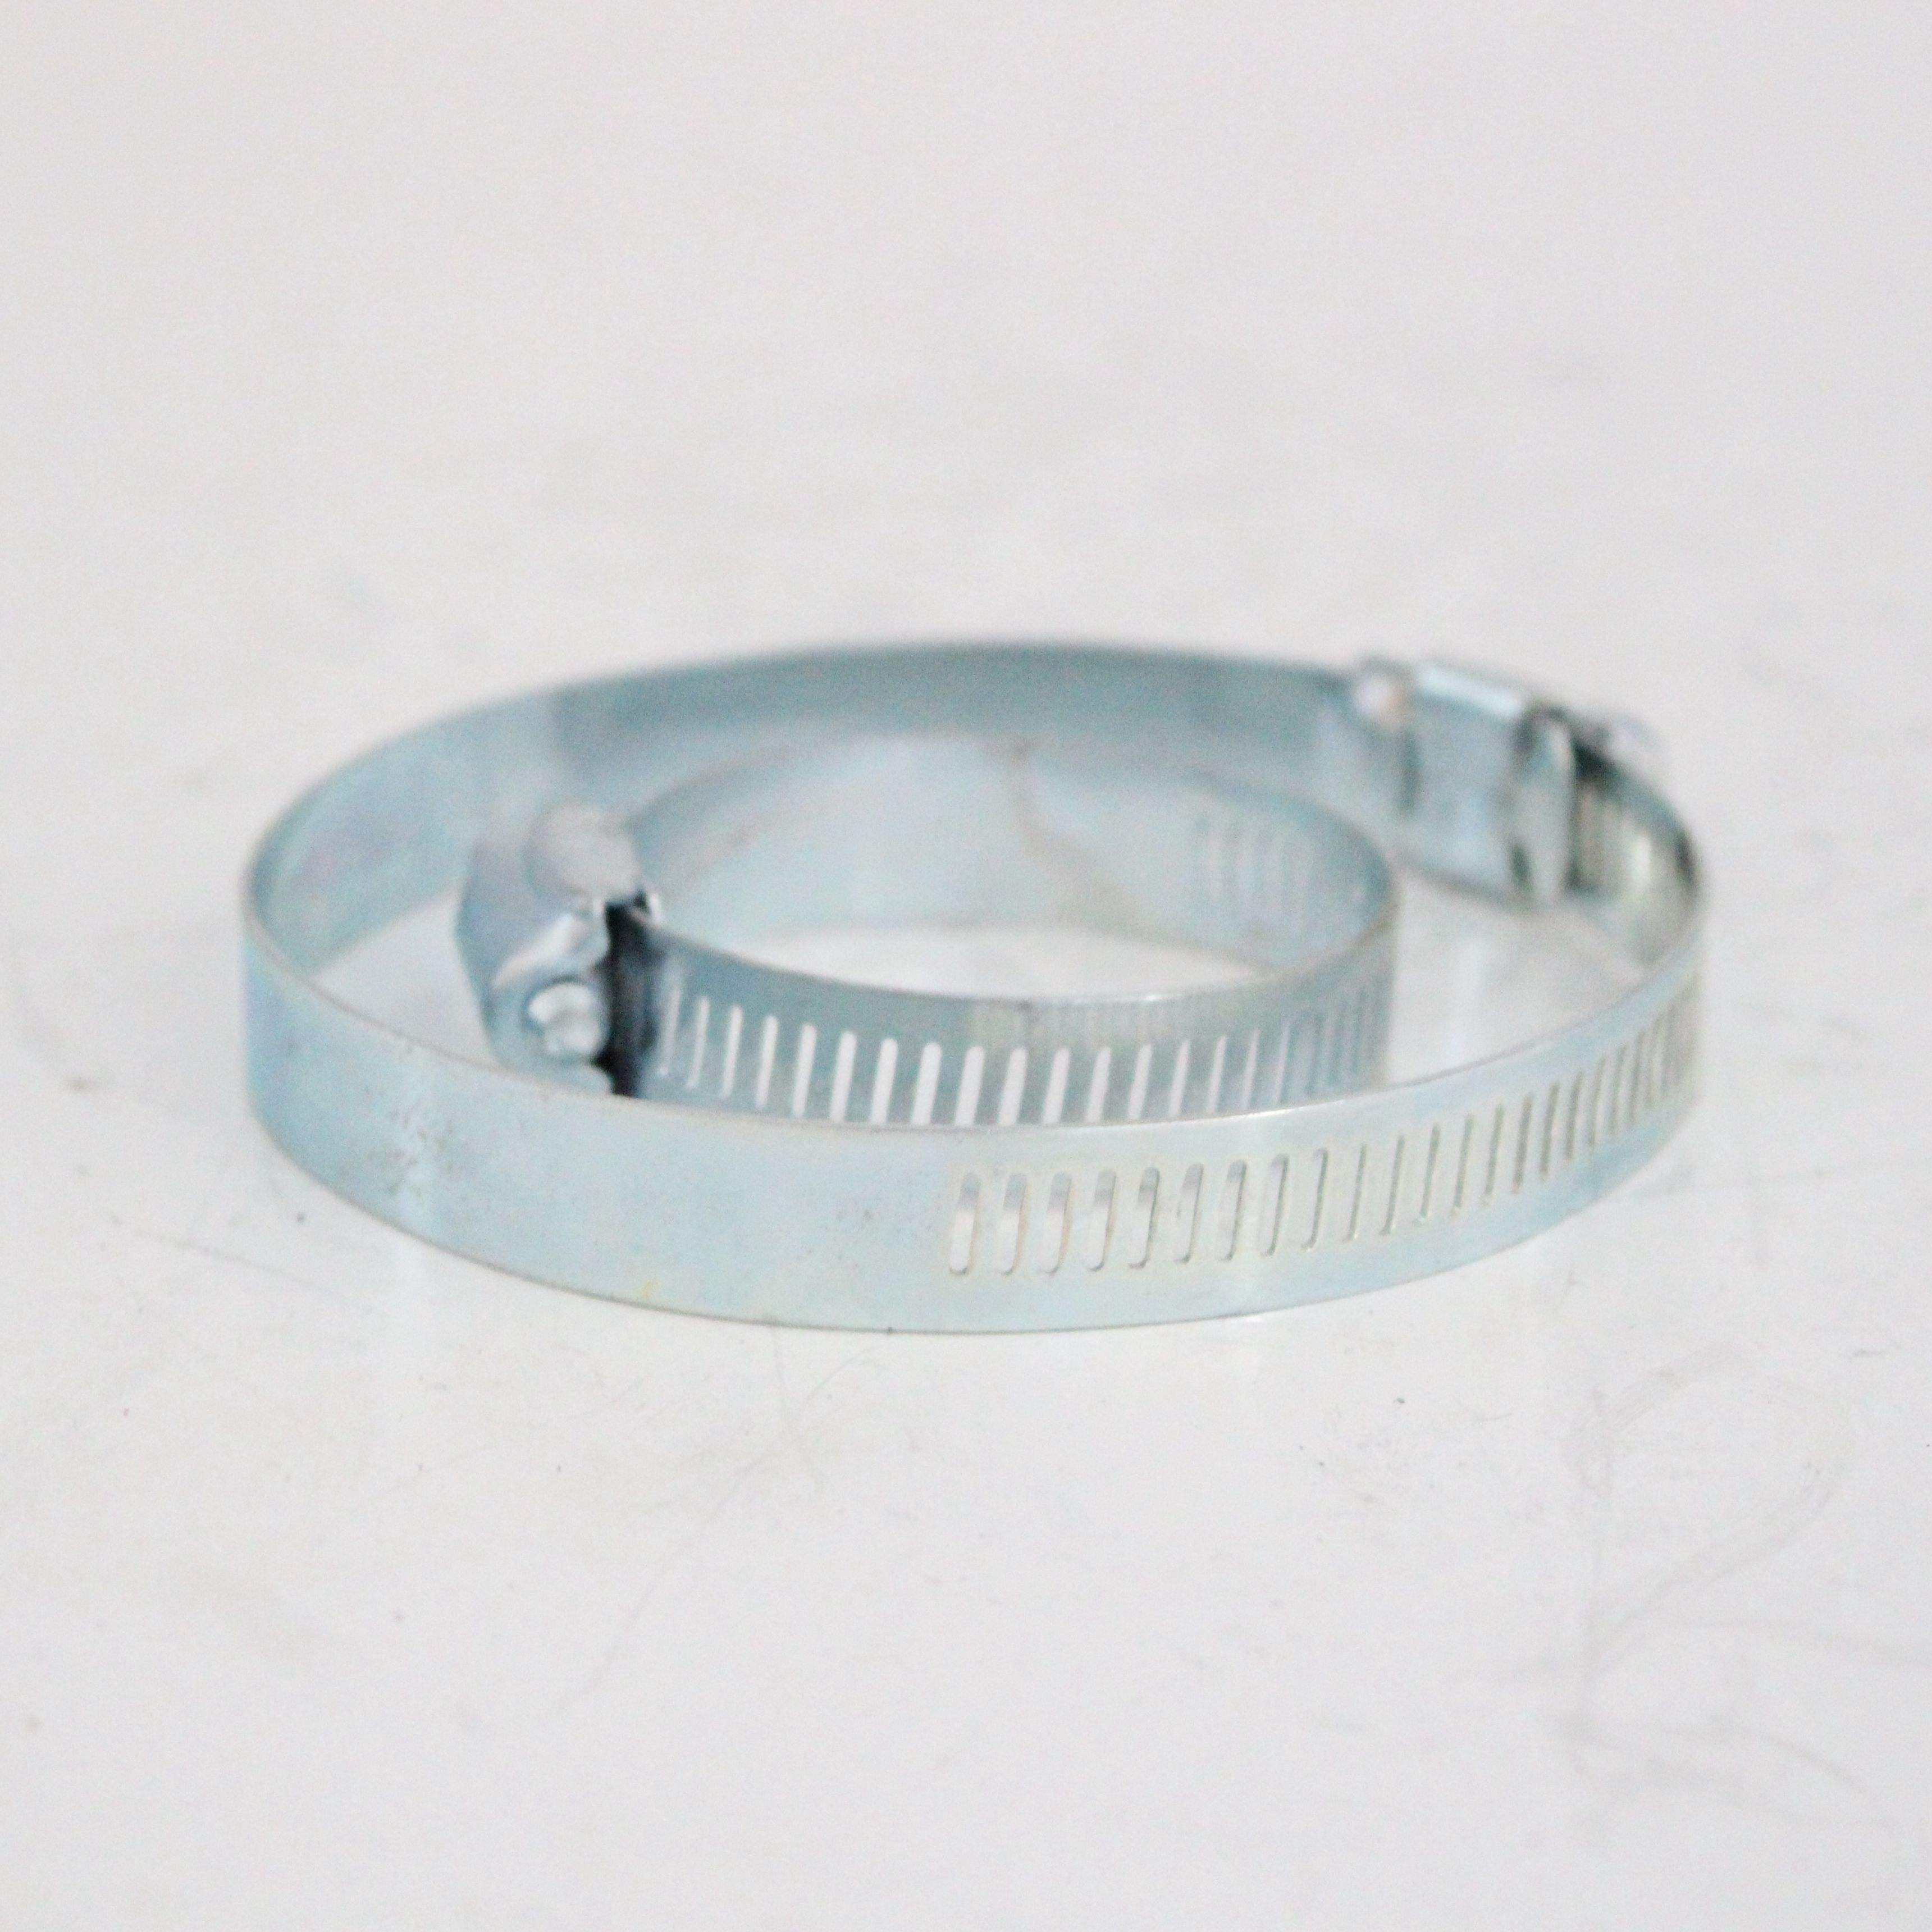 W1 American Type Galvanized Steel Worm-drive hose clamp